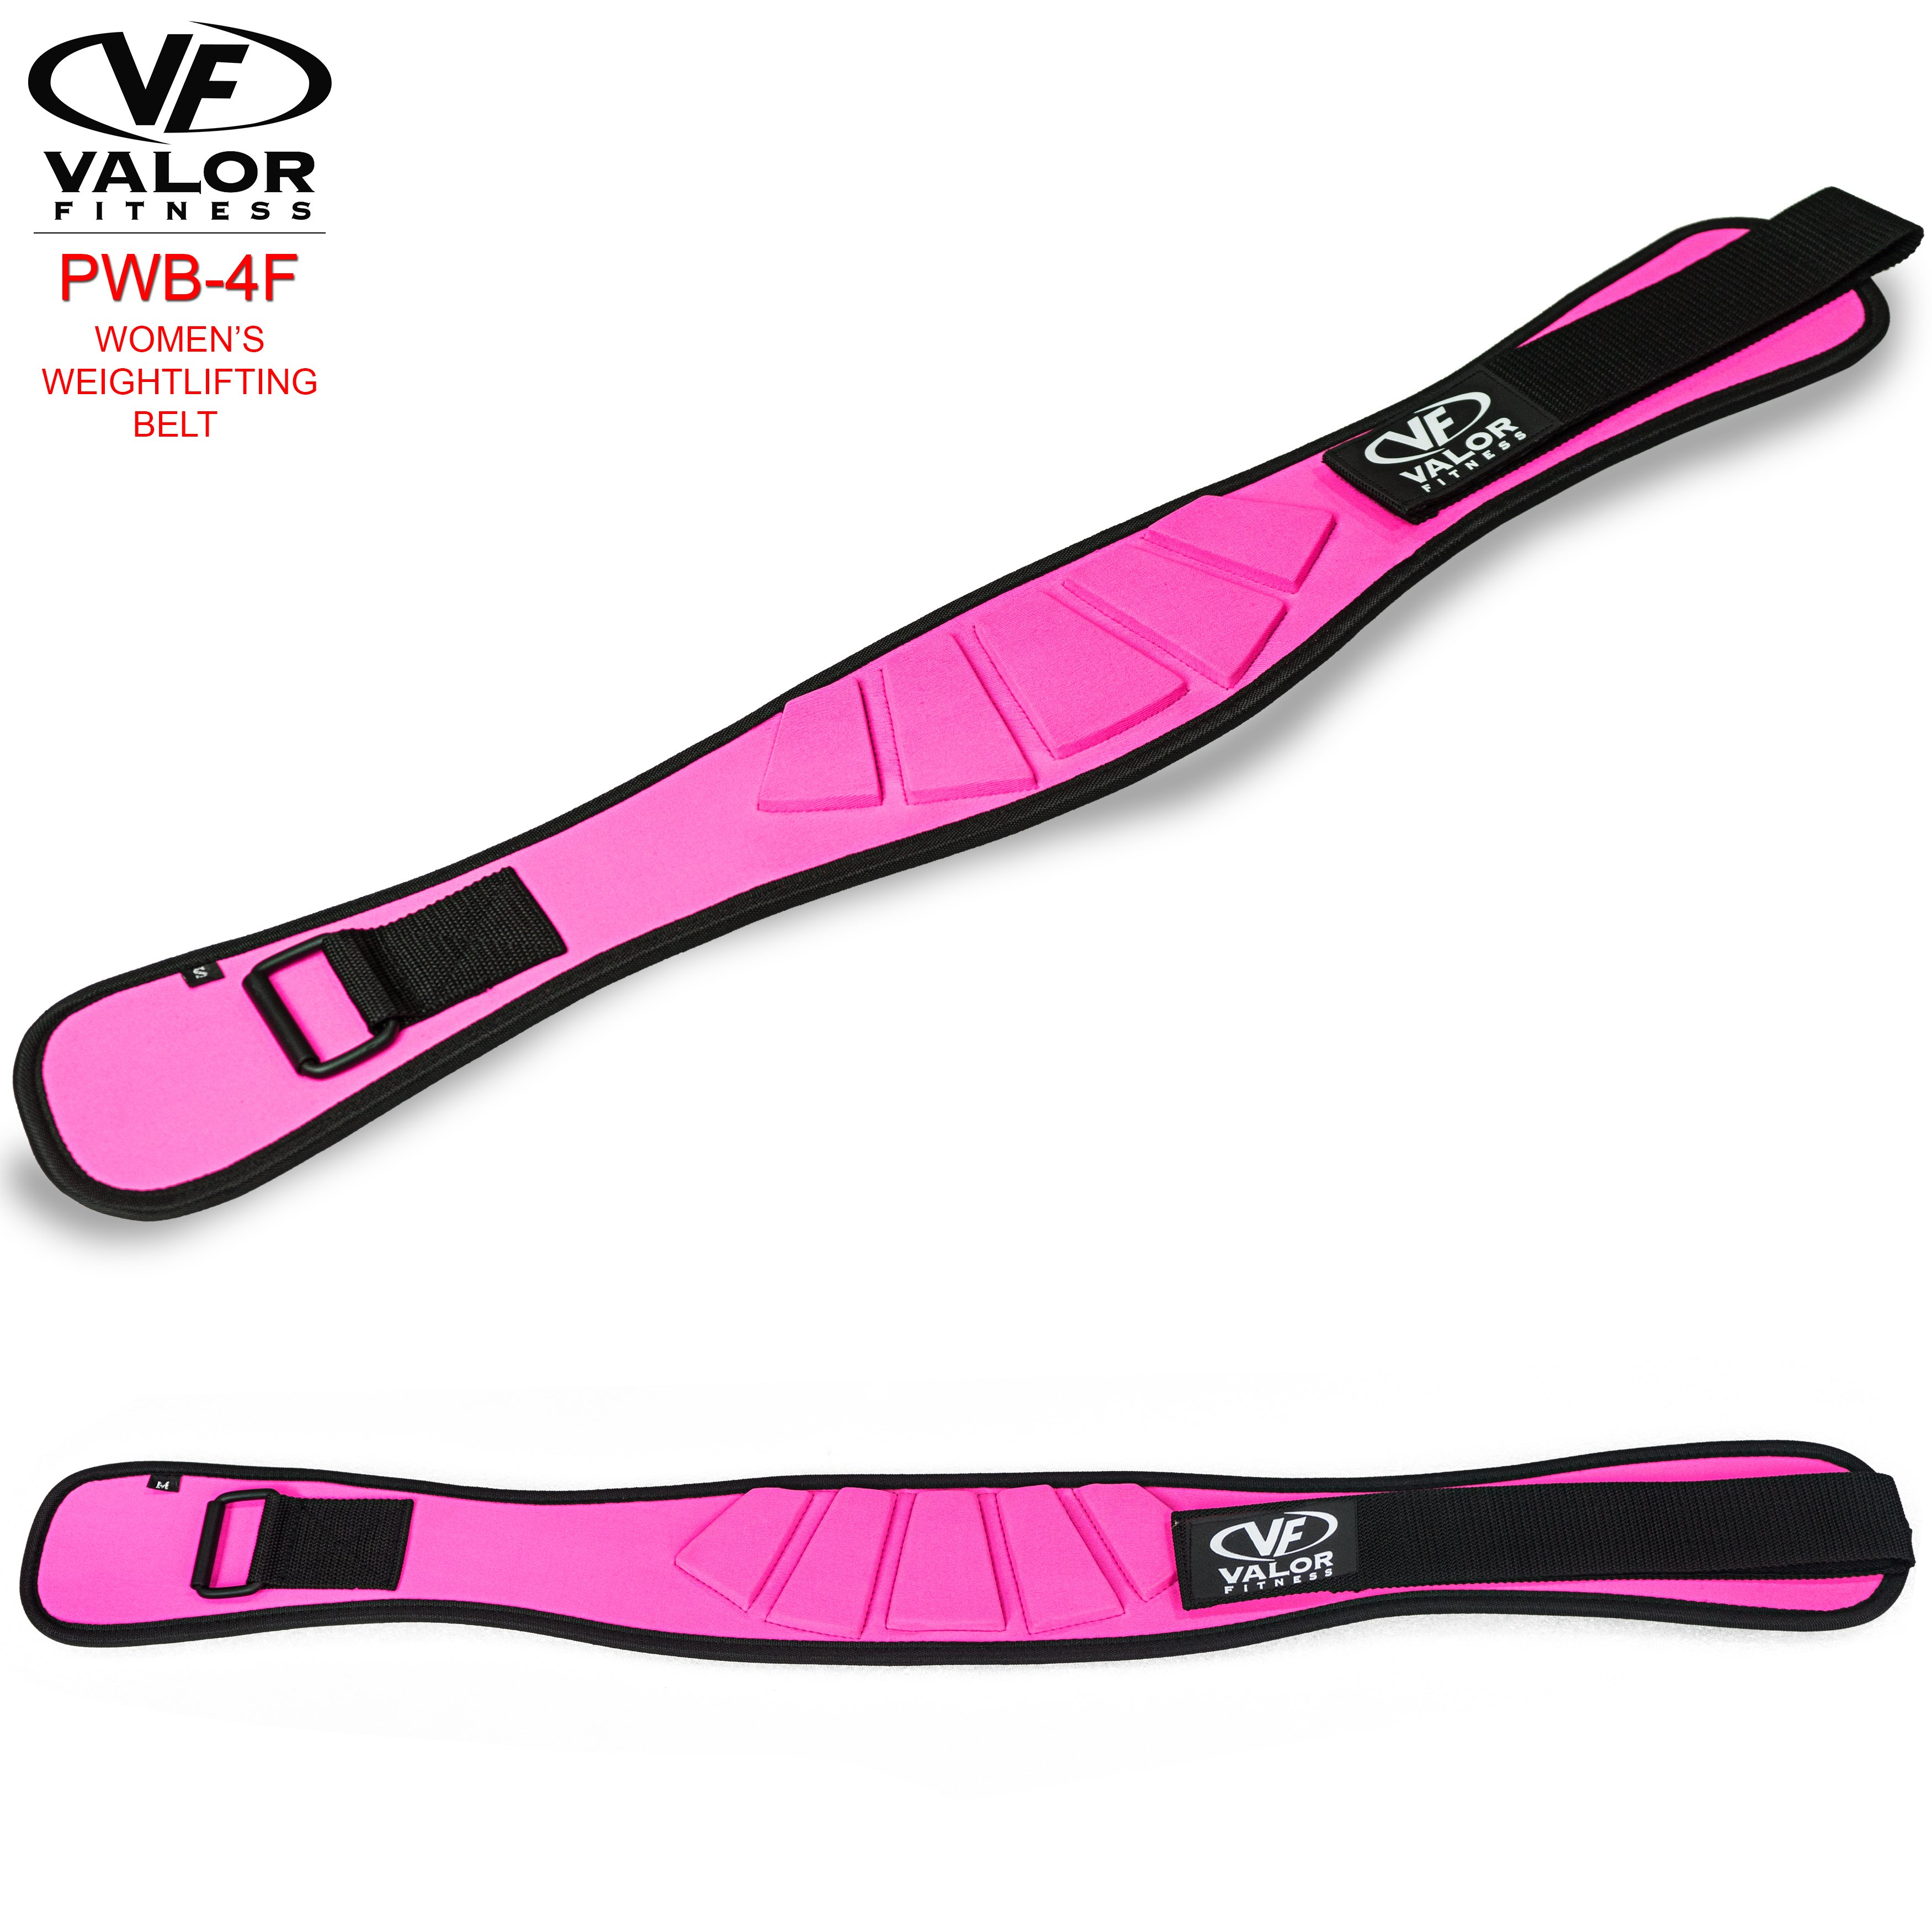 Valor Fitness PWB-4F Women's Weightlifting Belt, Size XXS